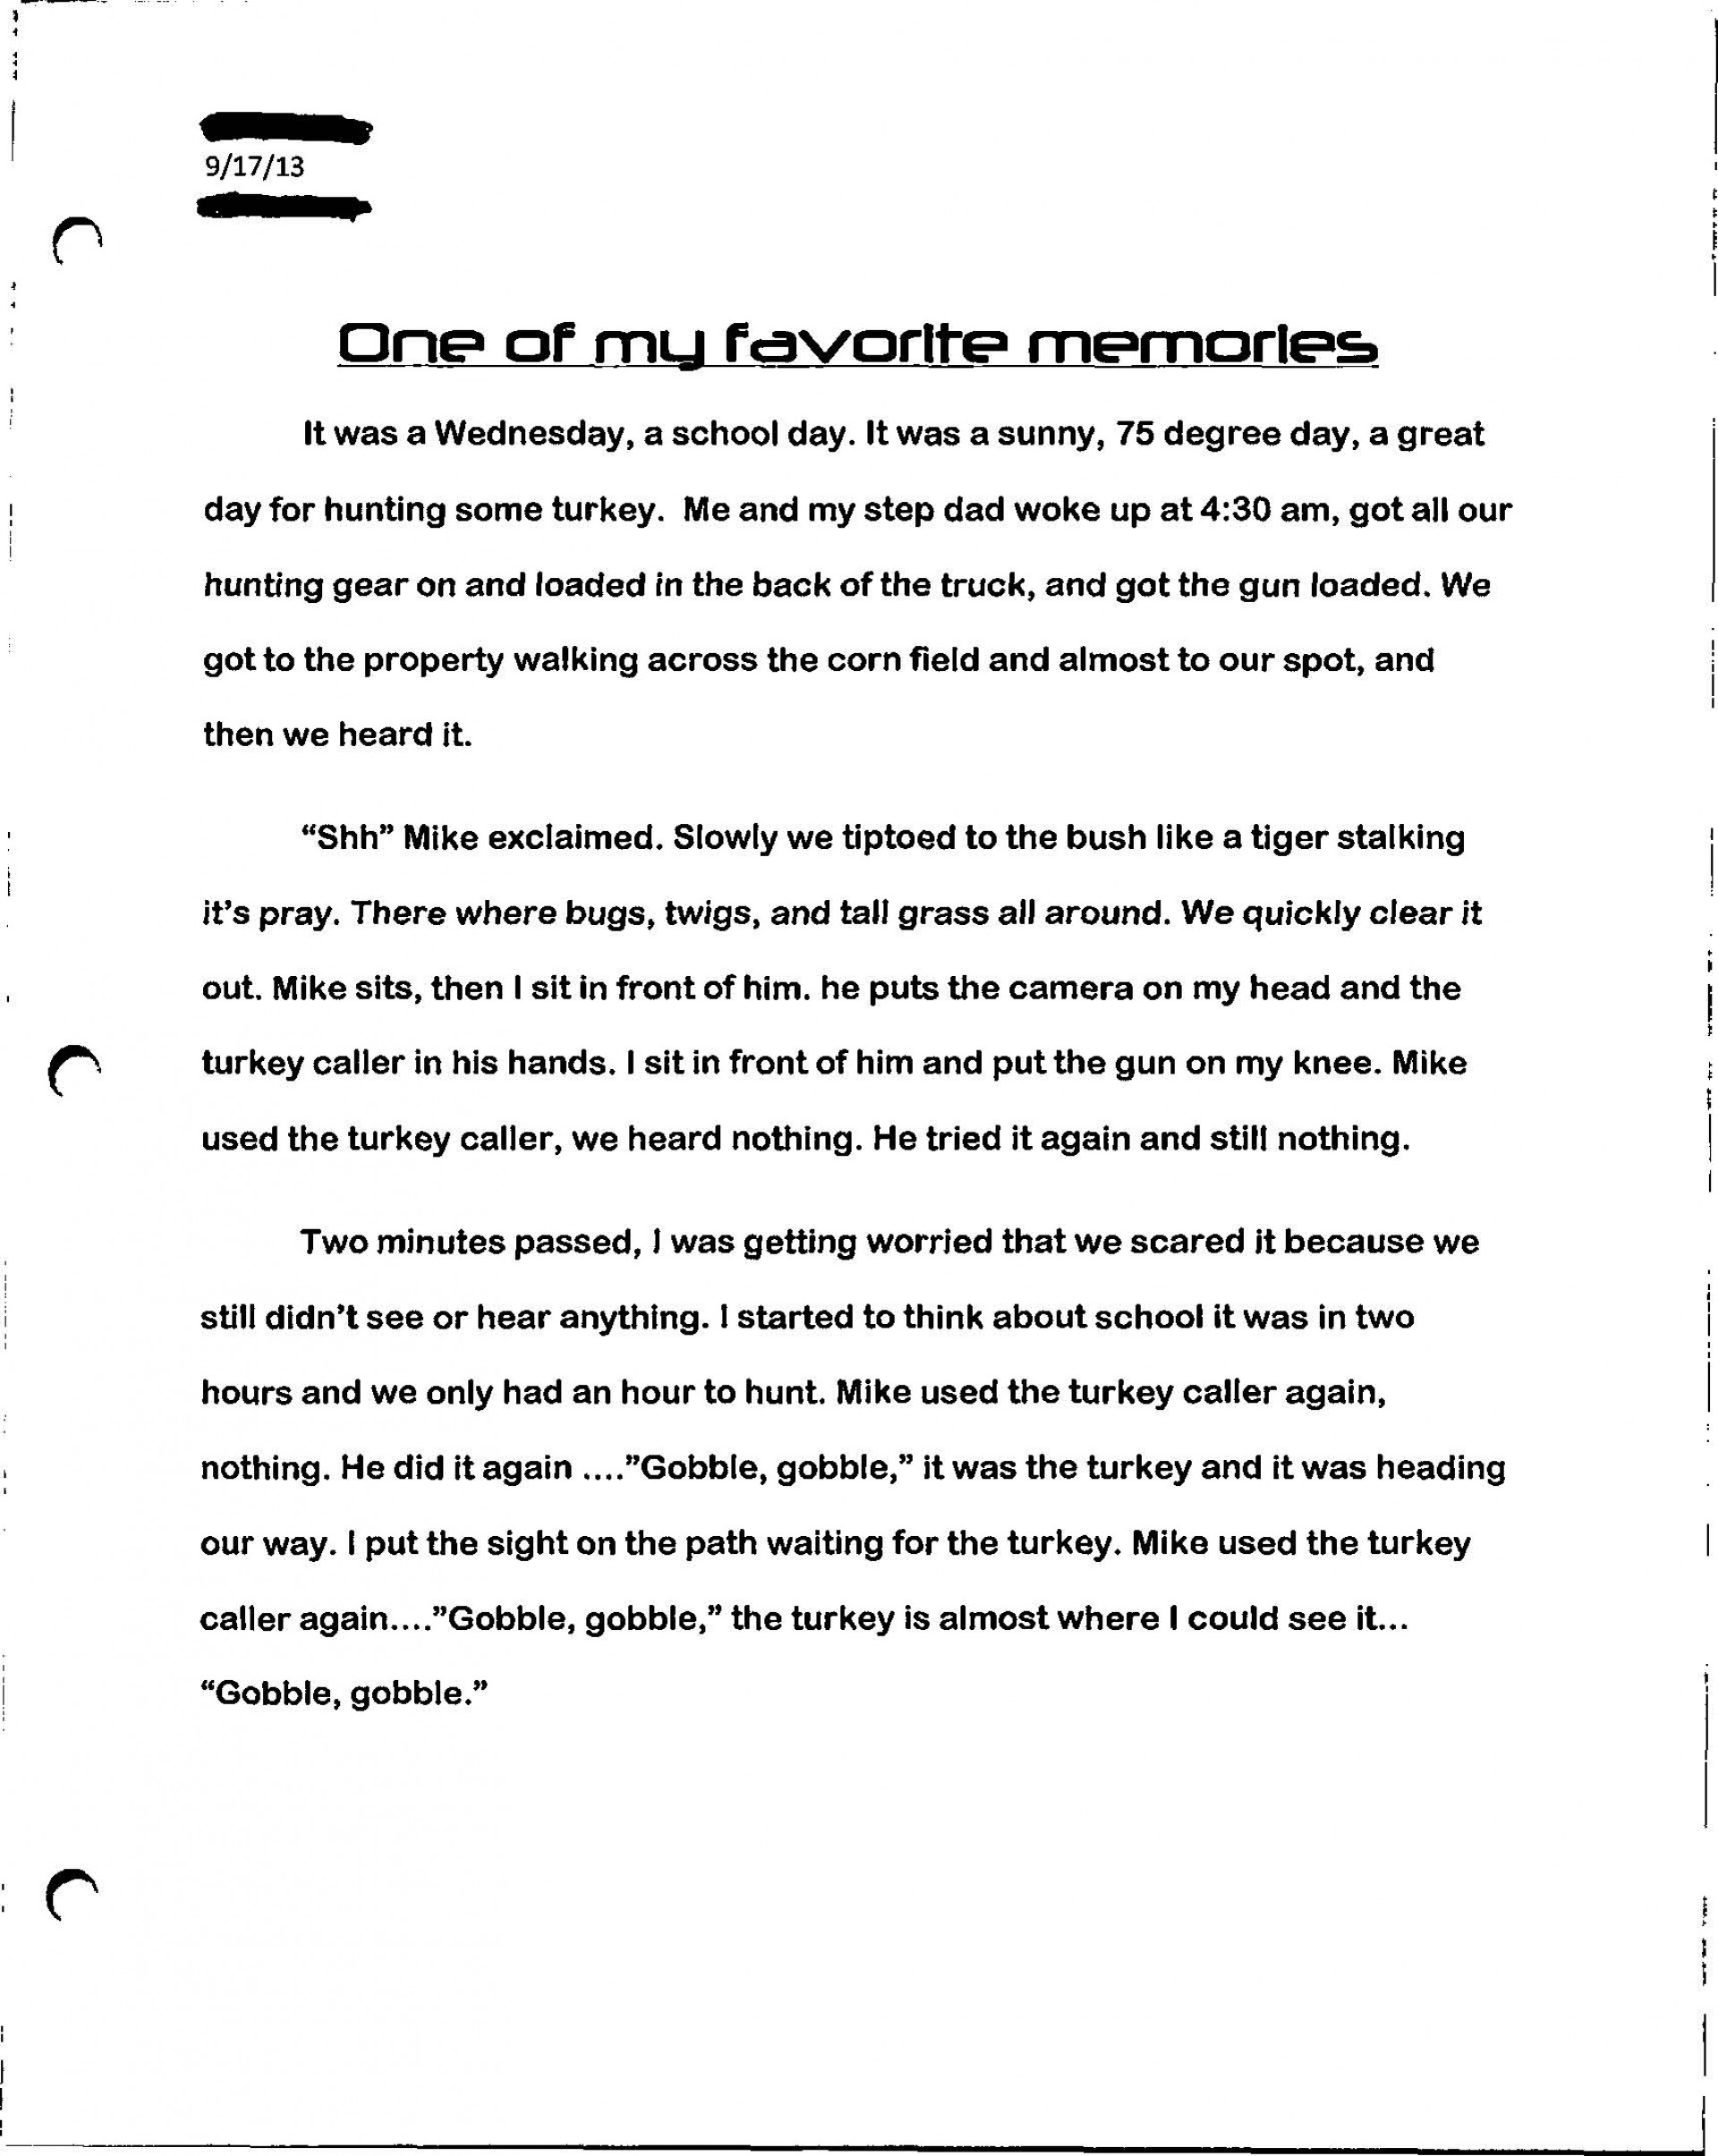 003 Essay Of Who Am I Example Paperexample2 Page 1 Awesome As A Person Filipino Writing Aim In Life 1920